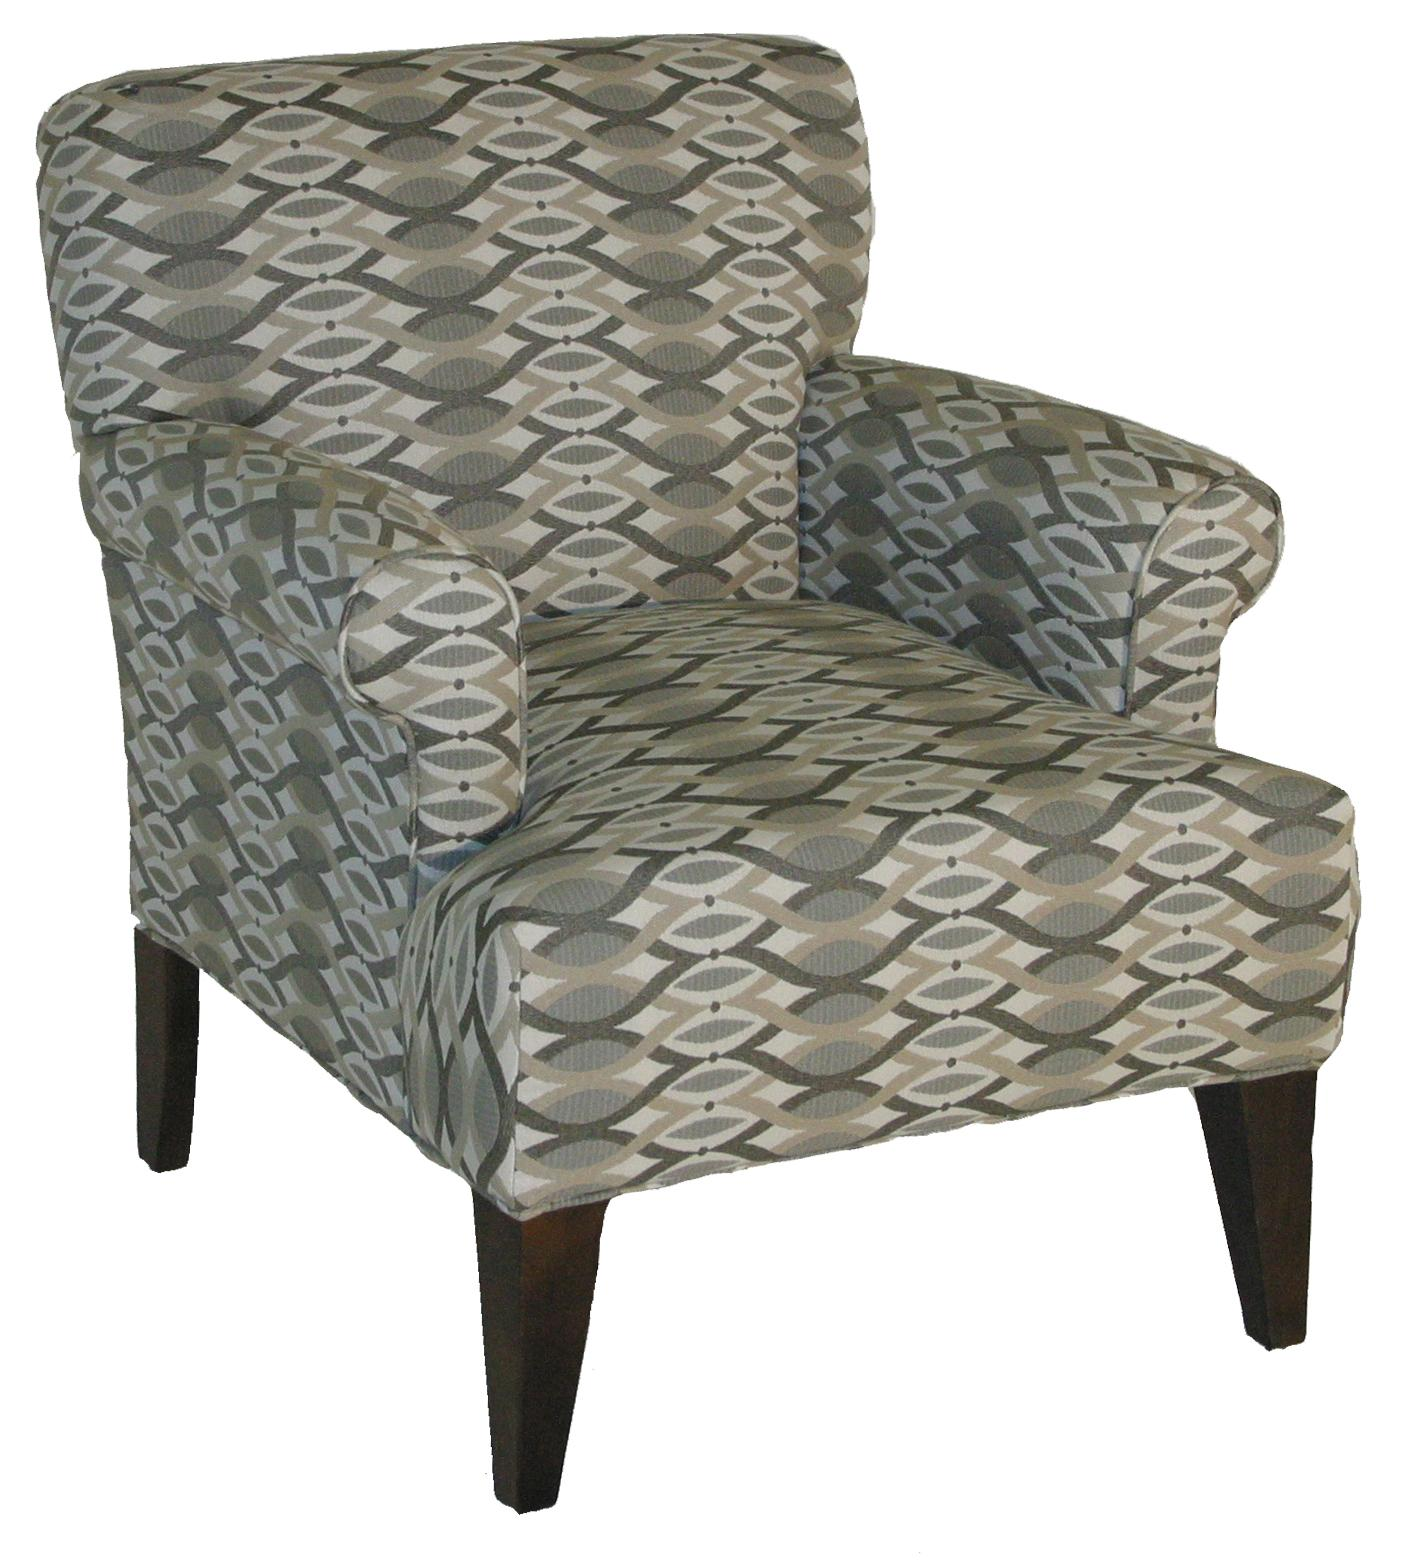 Rowe Chairs and Accents Roma Upholstered Chair - Item Number: 556 17519-75